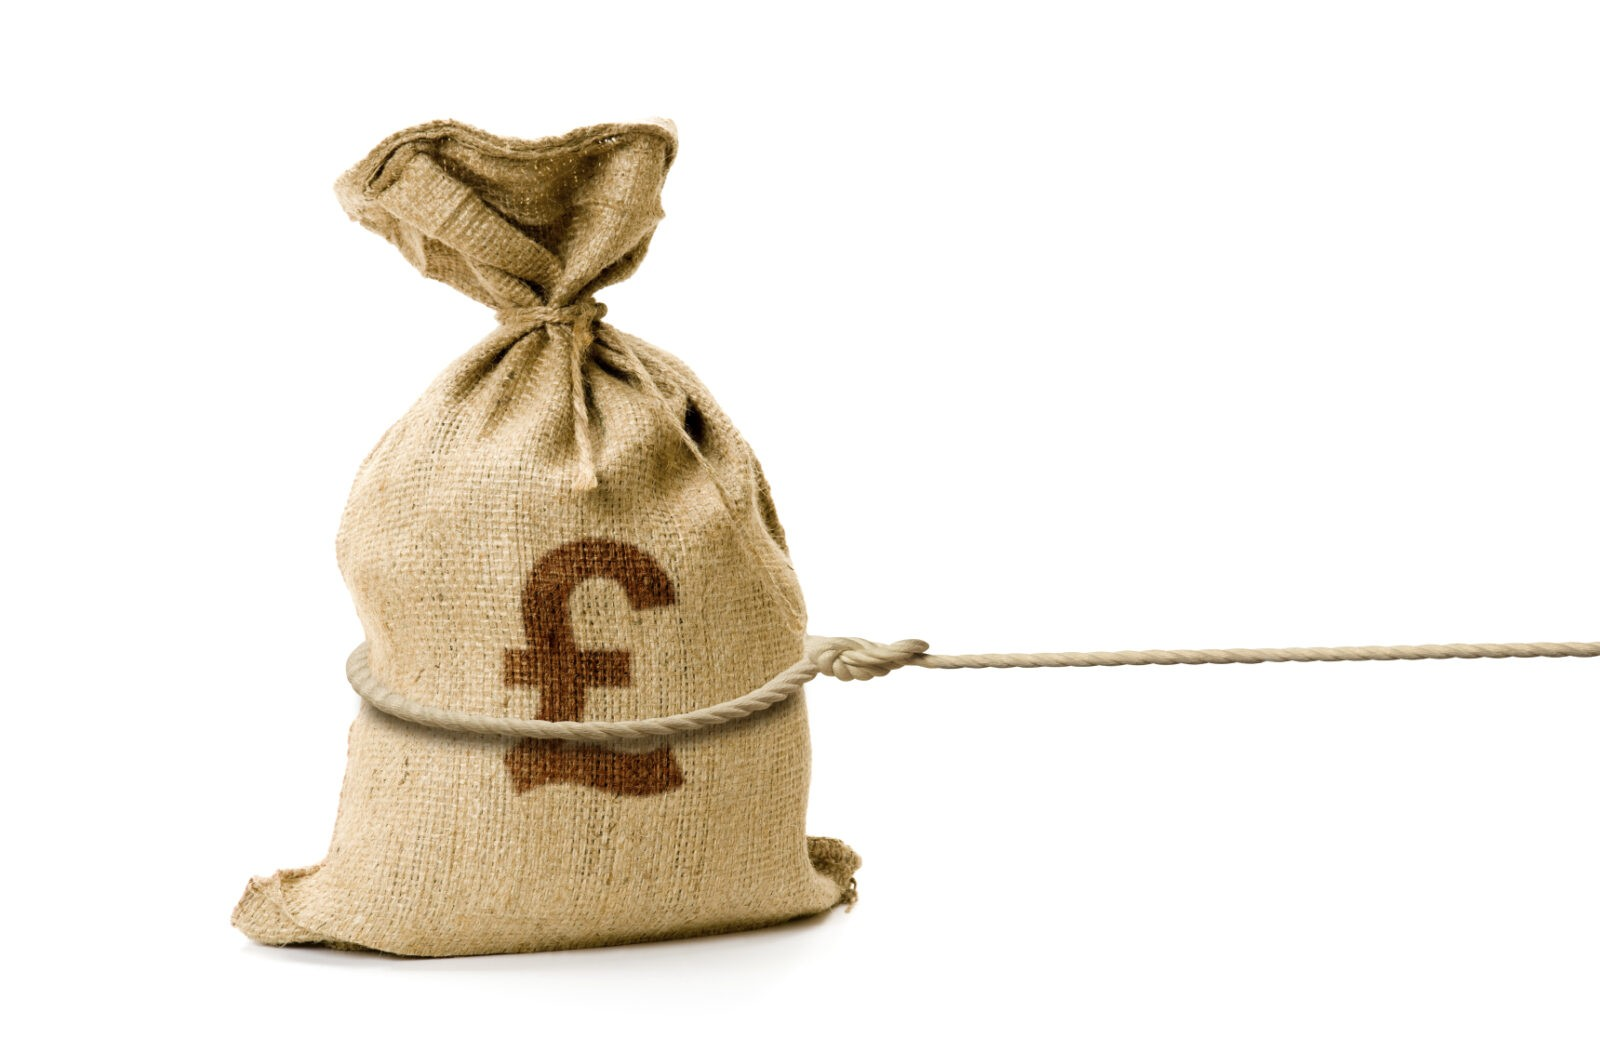 british currency in sack